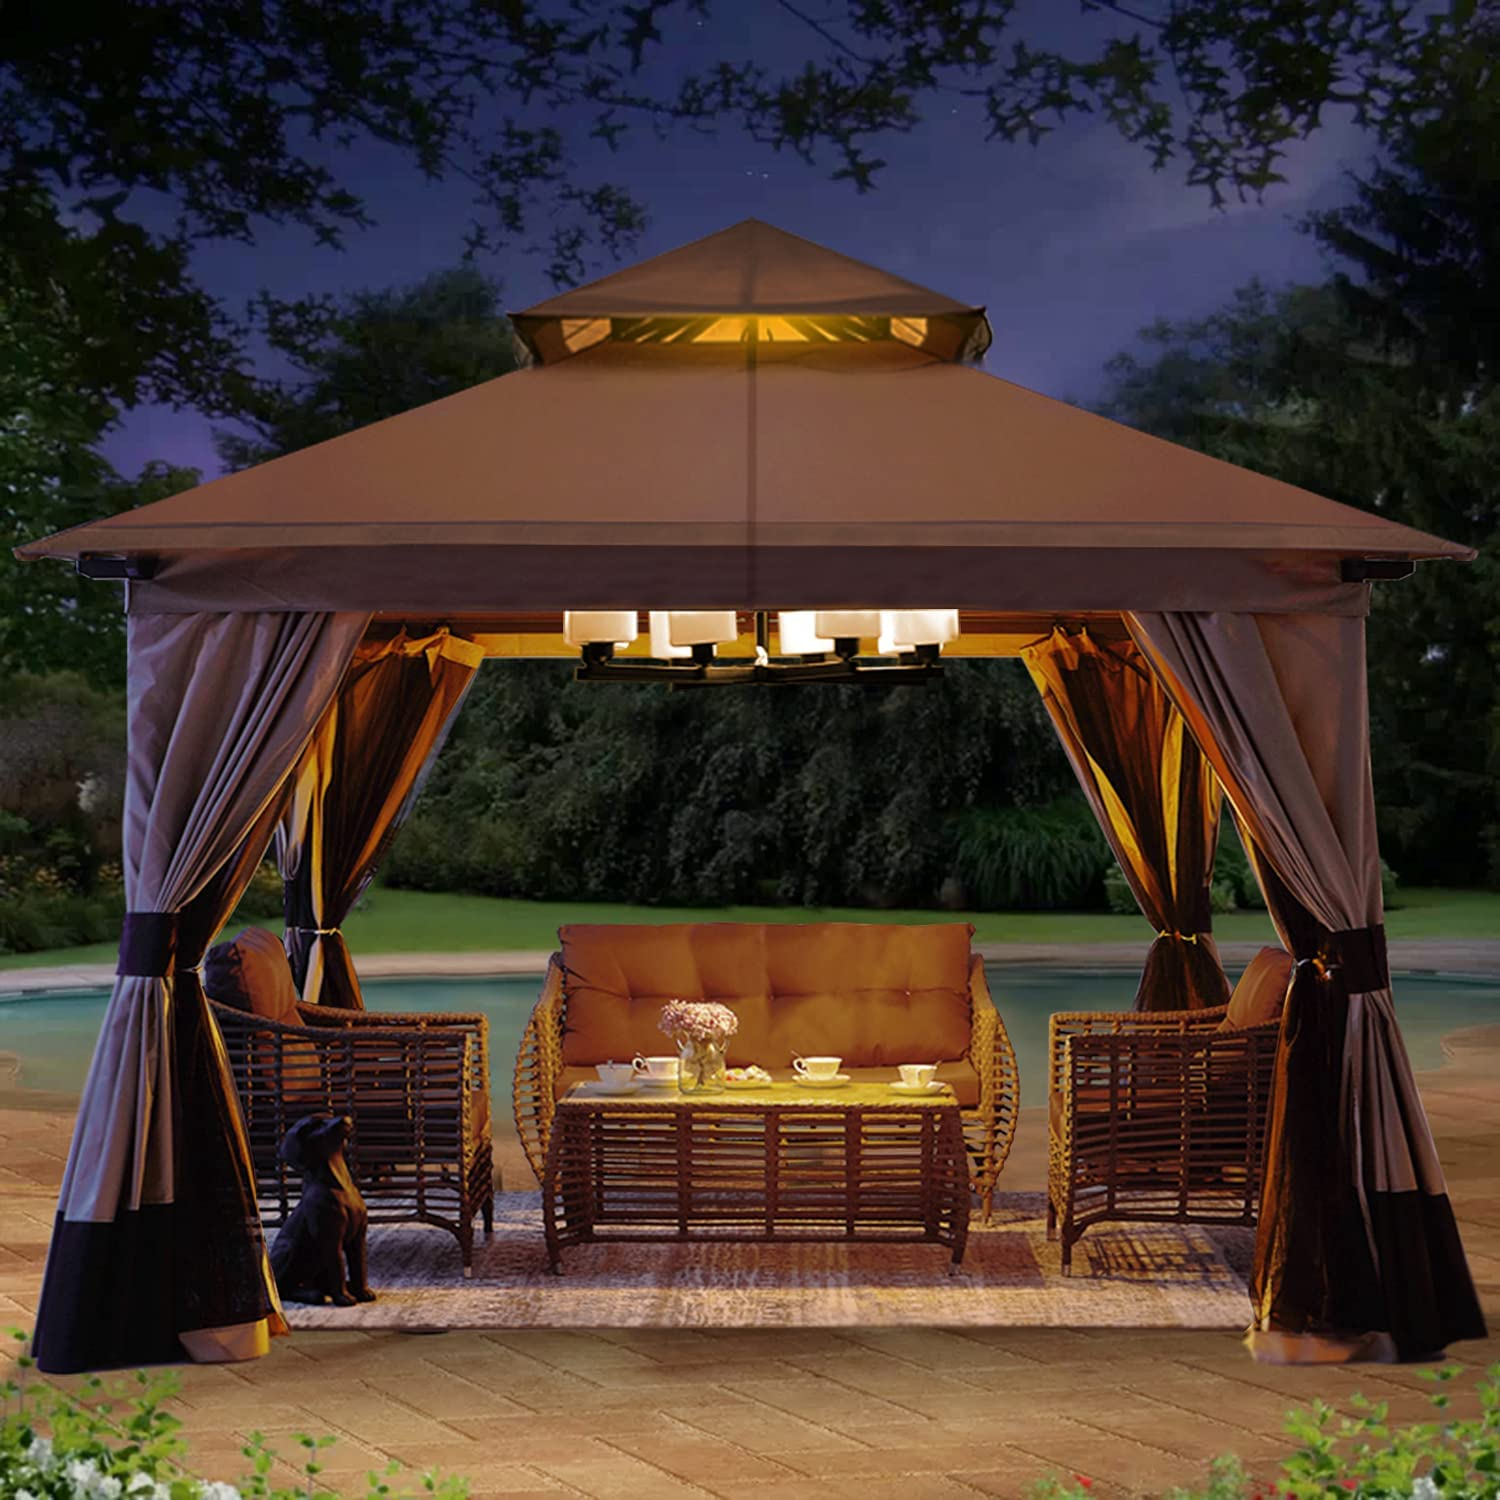 Max 85% OFF ABCCANOPY 10'x10' Patio Outdoor Limited Special Price Gazebo Canopy Roof Soft Double